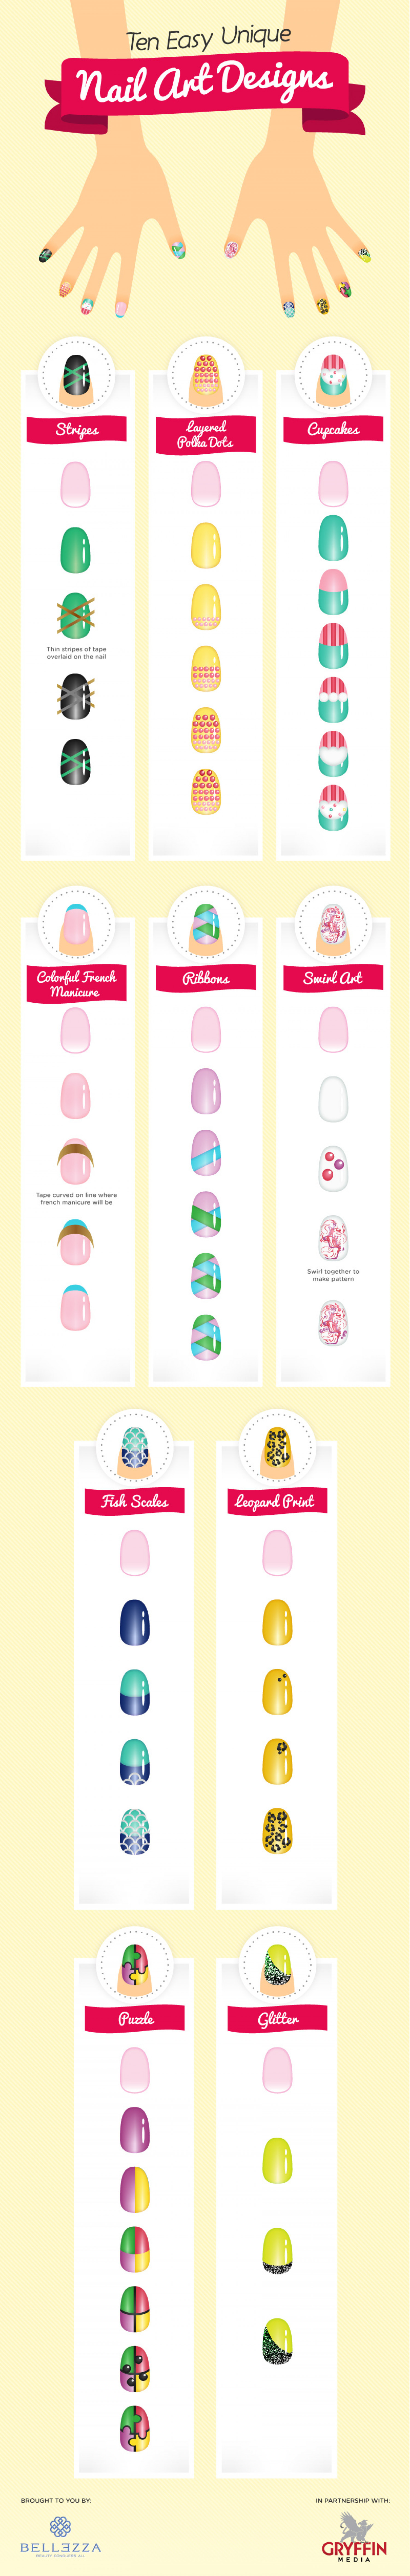 10 Easy & Unique Nail Art Designs Infographic